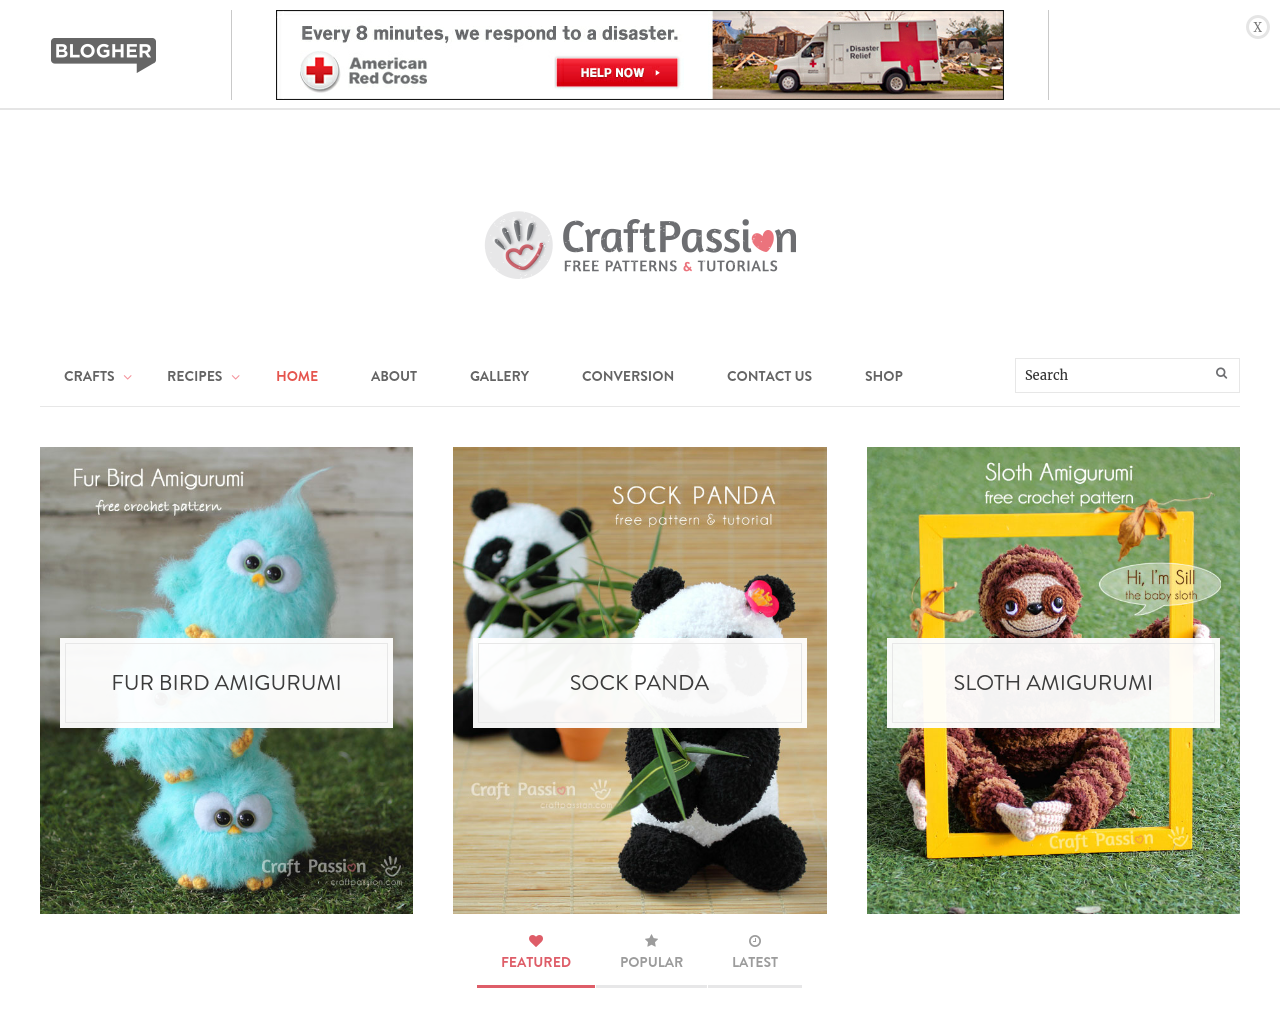 Craft-Passion-Advertising-Reviews-Pricing